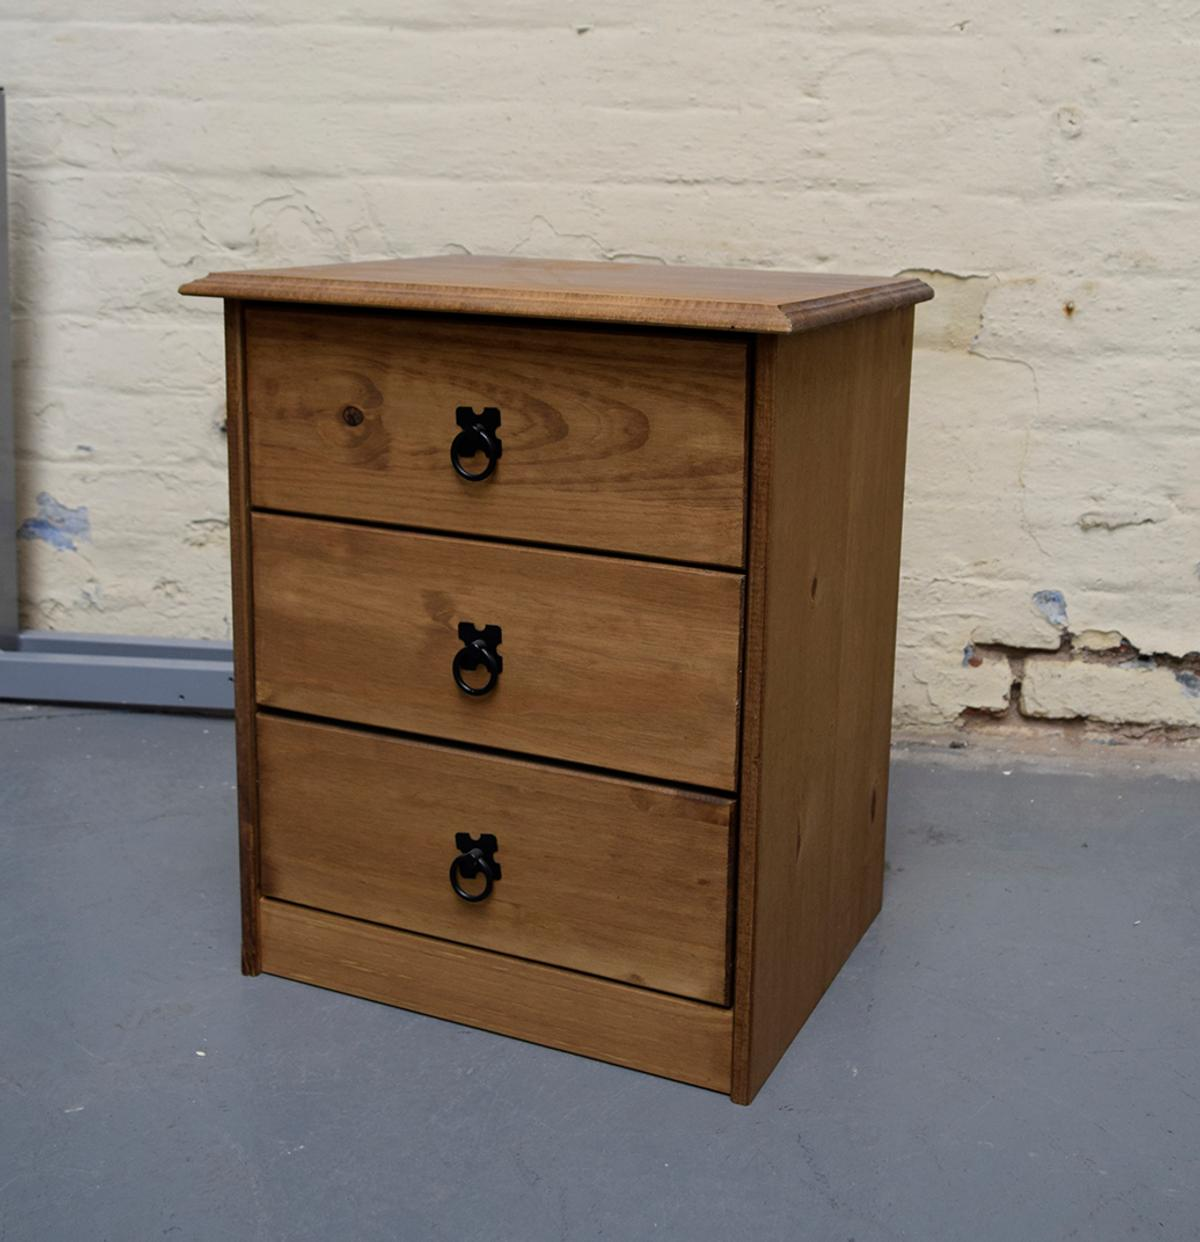 Description Distressed And Waxed Solid Pine Bedside Table Featuring 3 Drawers